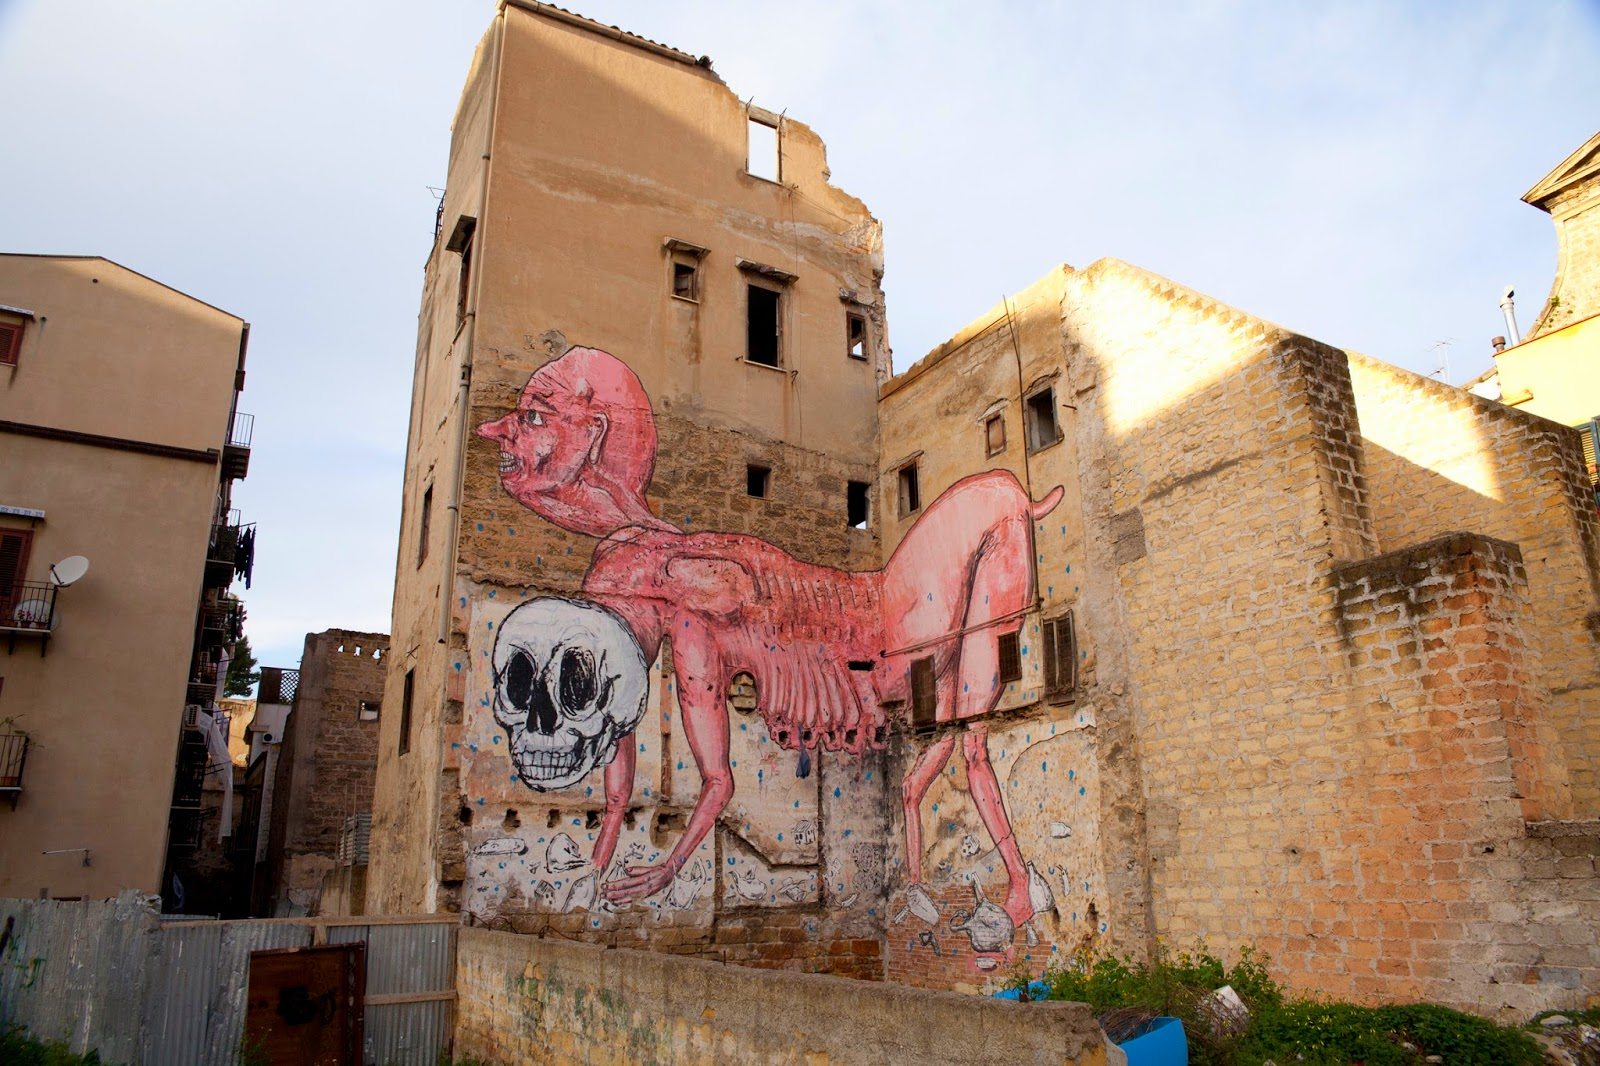 emajons-new-mural-in-vucciria-and-kalsa-palermo-05